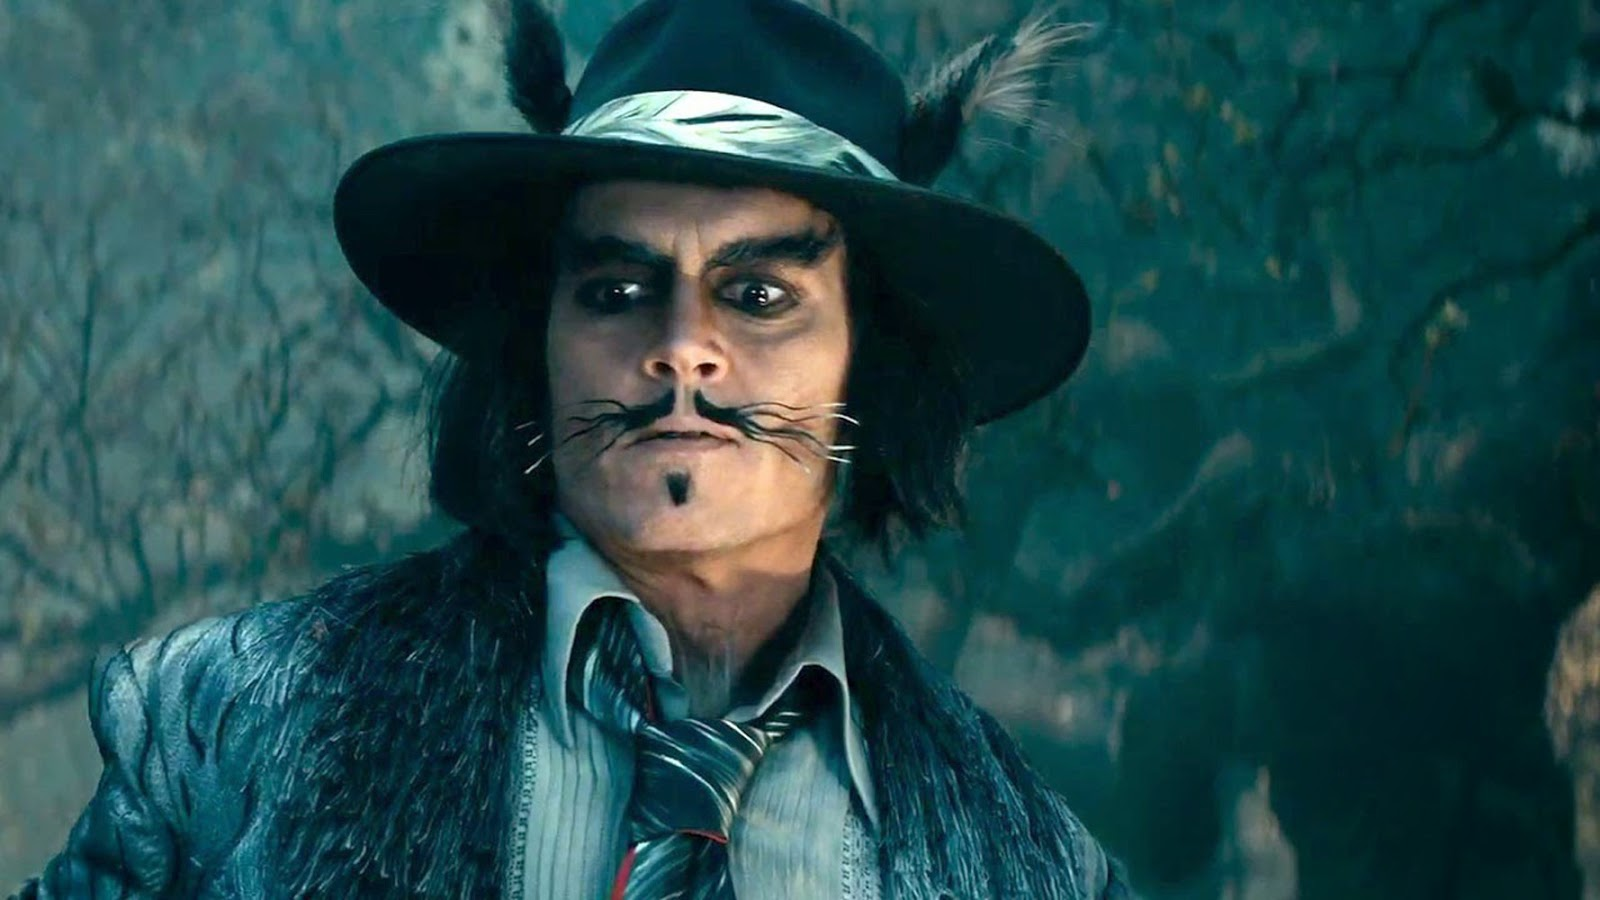 johnny depp the wolf into the woods wallpapers - Johnny Depp The Wolf Into the Woods HD Wallpapers